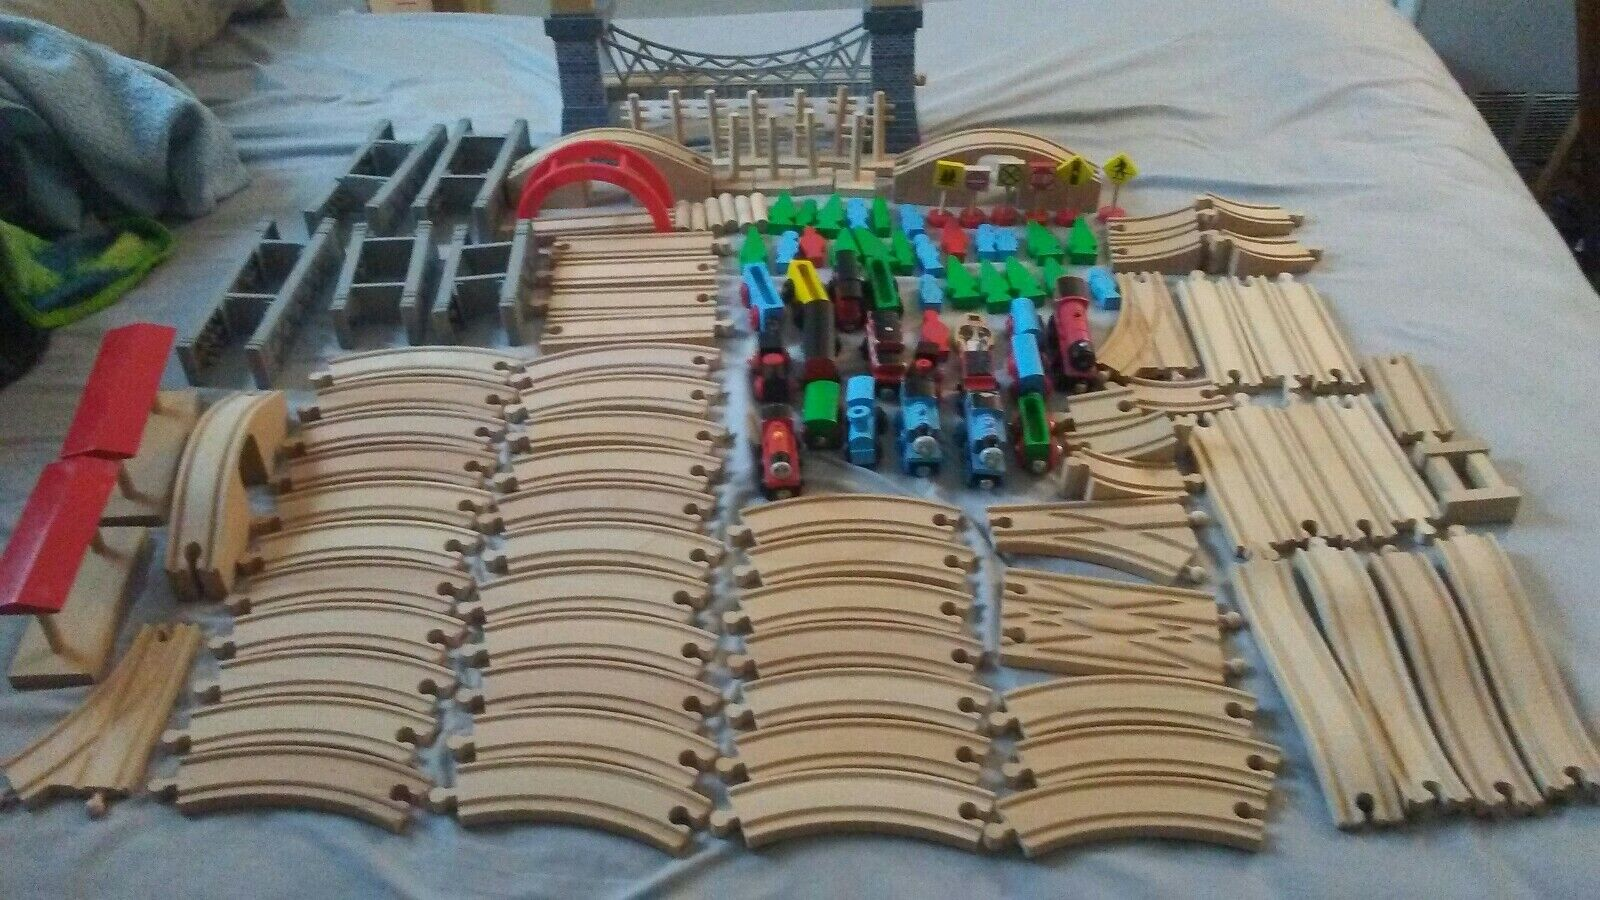 Thomas and others Wooden Trains Tracks  Extra Parts Pieces Railway Train Bridge